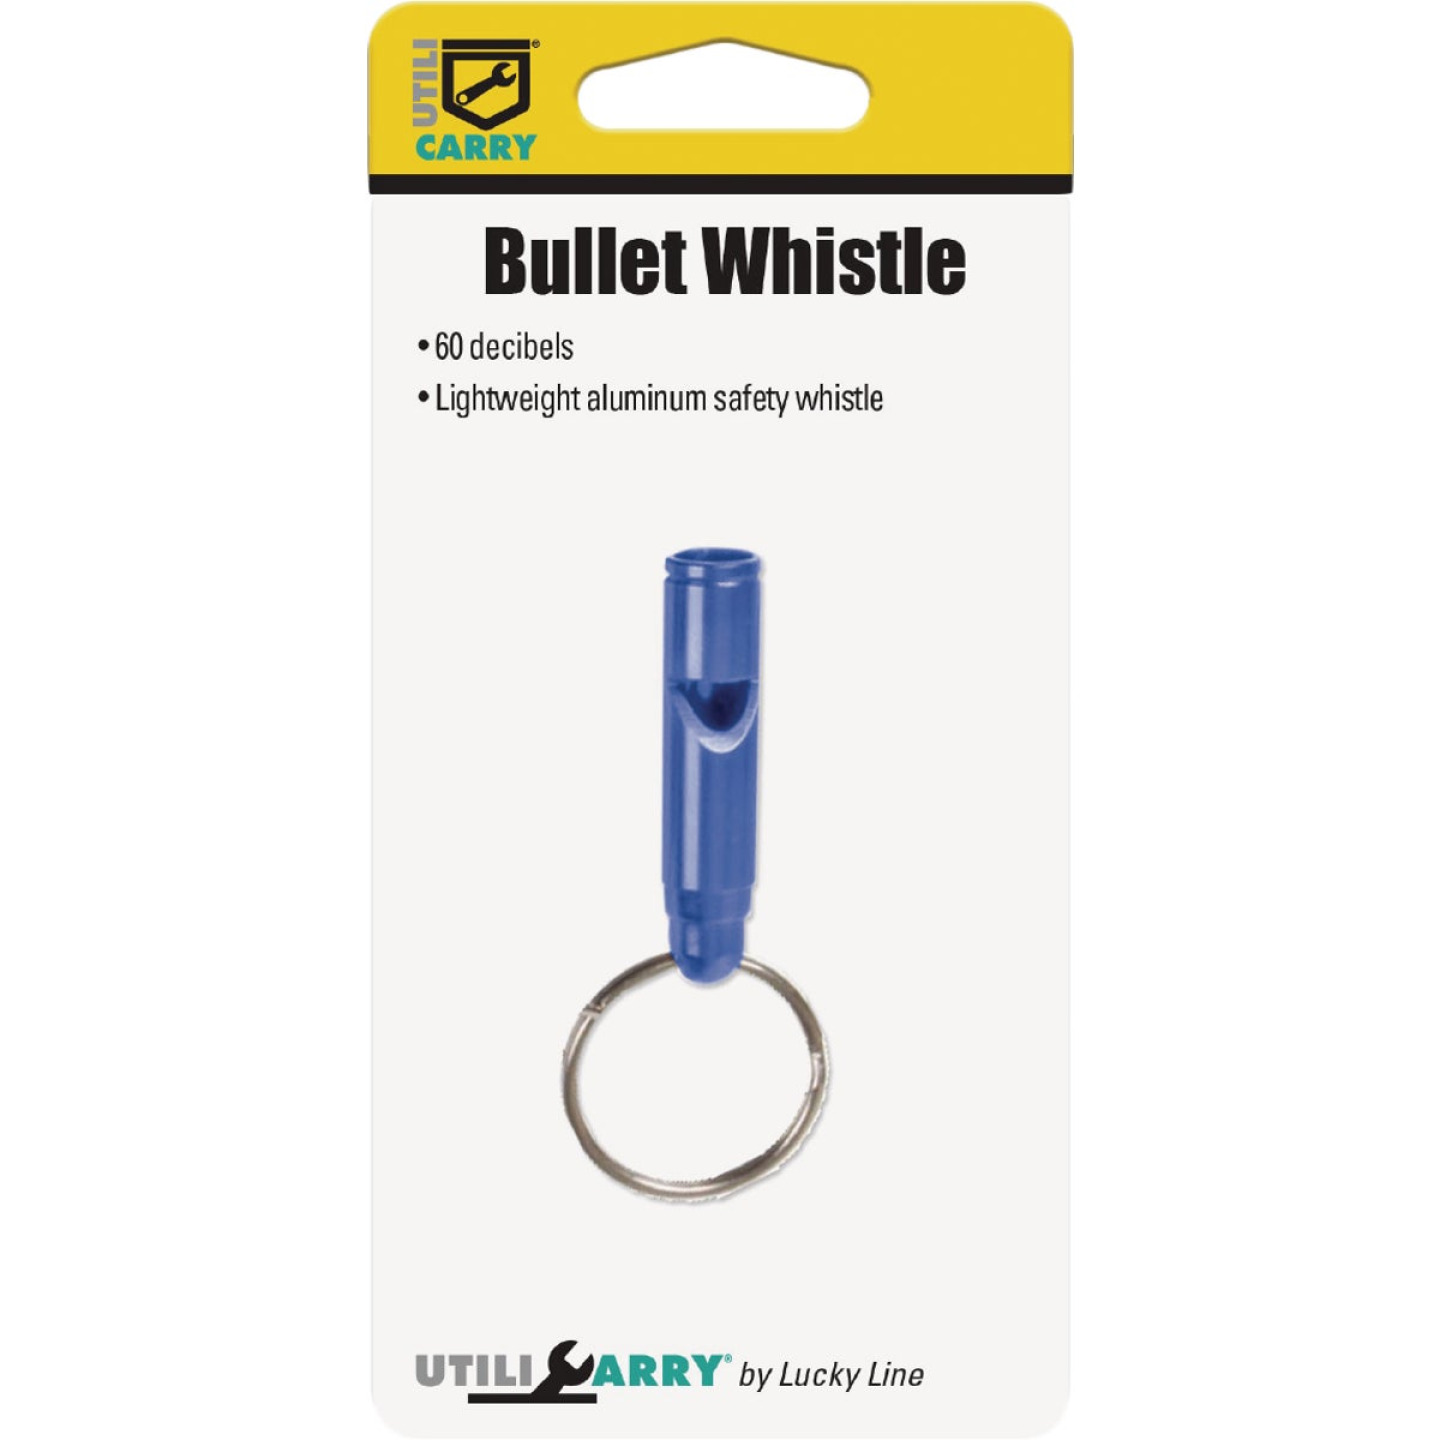 Lucky Line Utilicarry Bullet Whistle with Key Ring Image 2